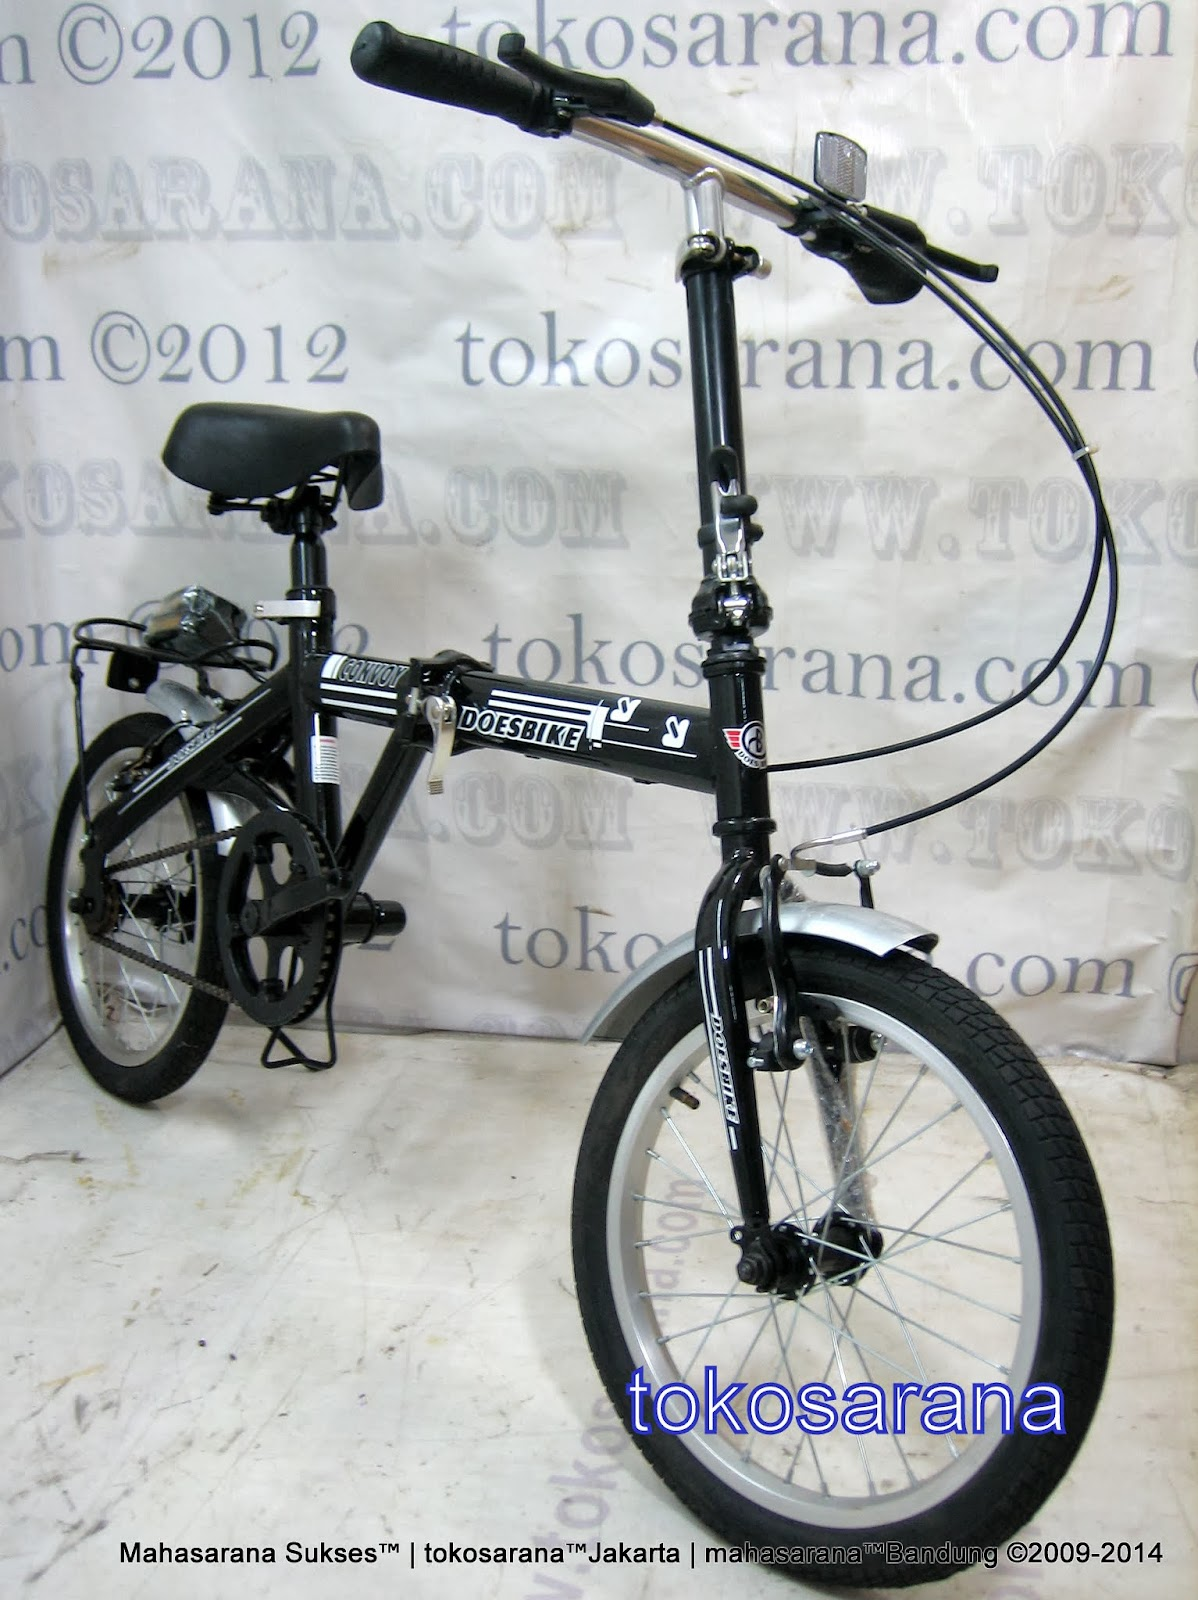 16 Inch DoesBike 1601 Convoy Folding Bike with Carrier 2